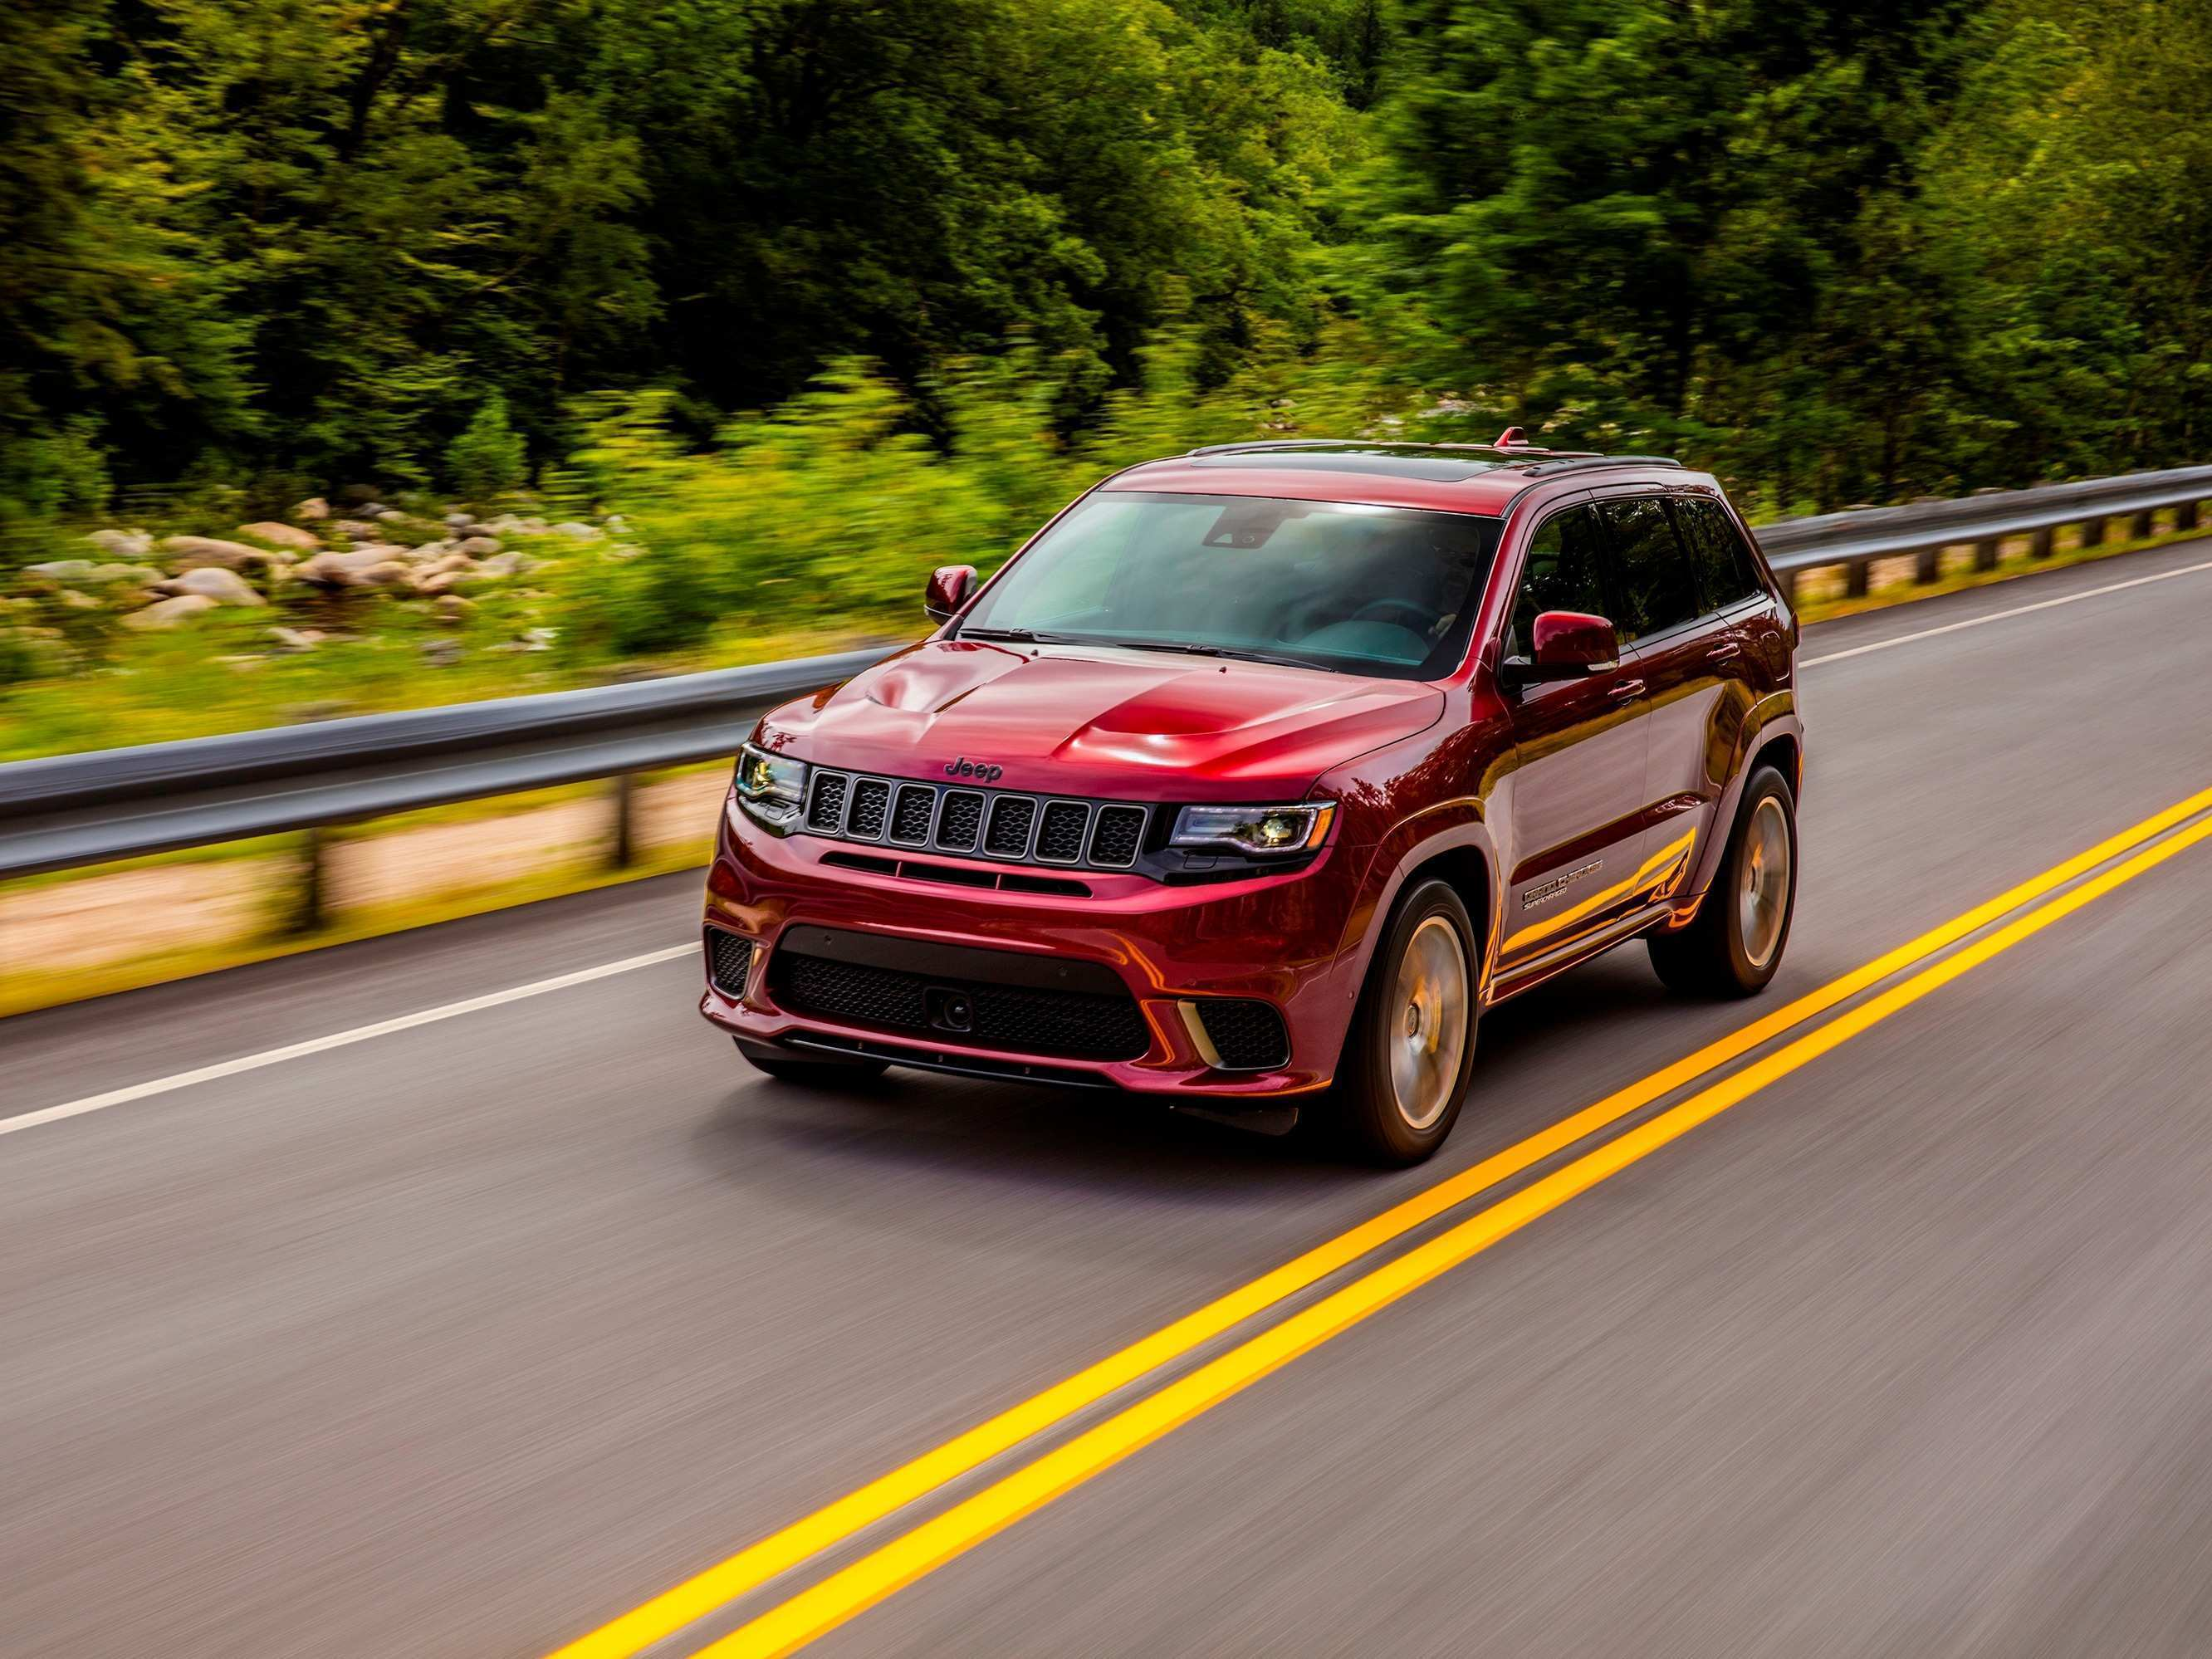 34 New 2020 Jeep Cherokee Kbb Specs and Review by 2020 Jeep Cherokee Kbb